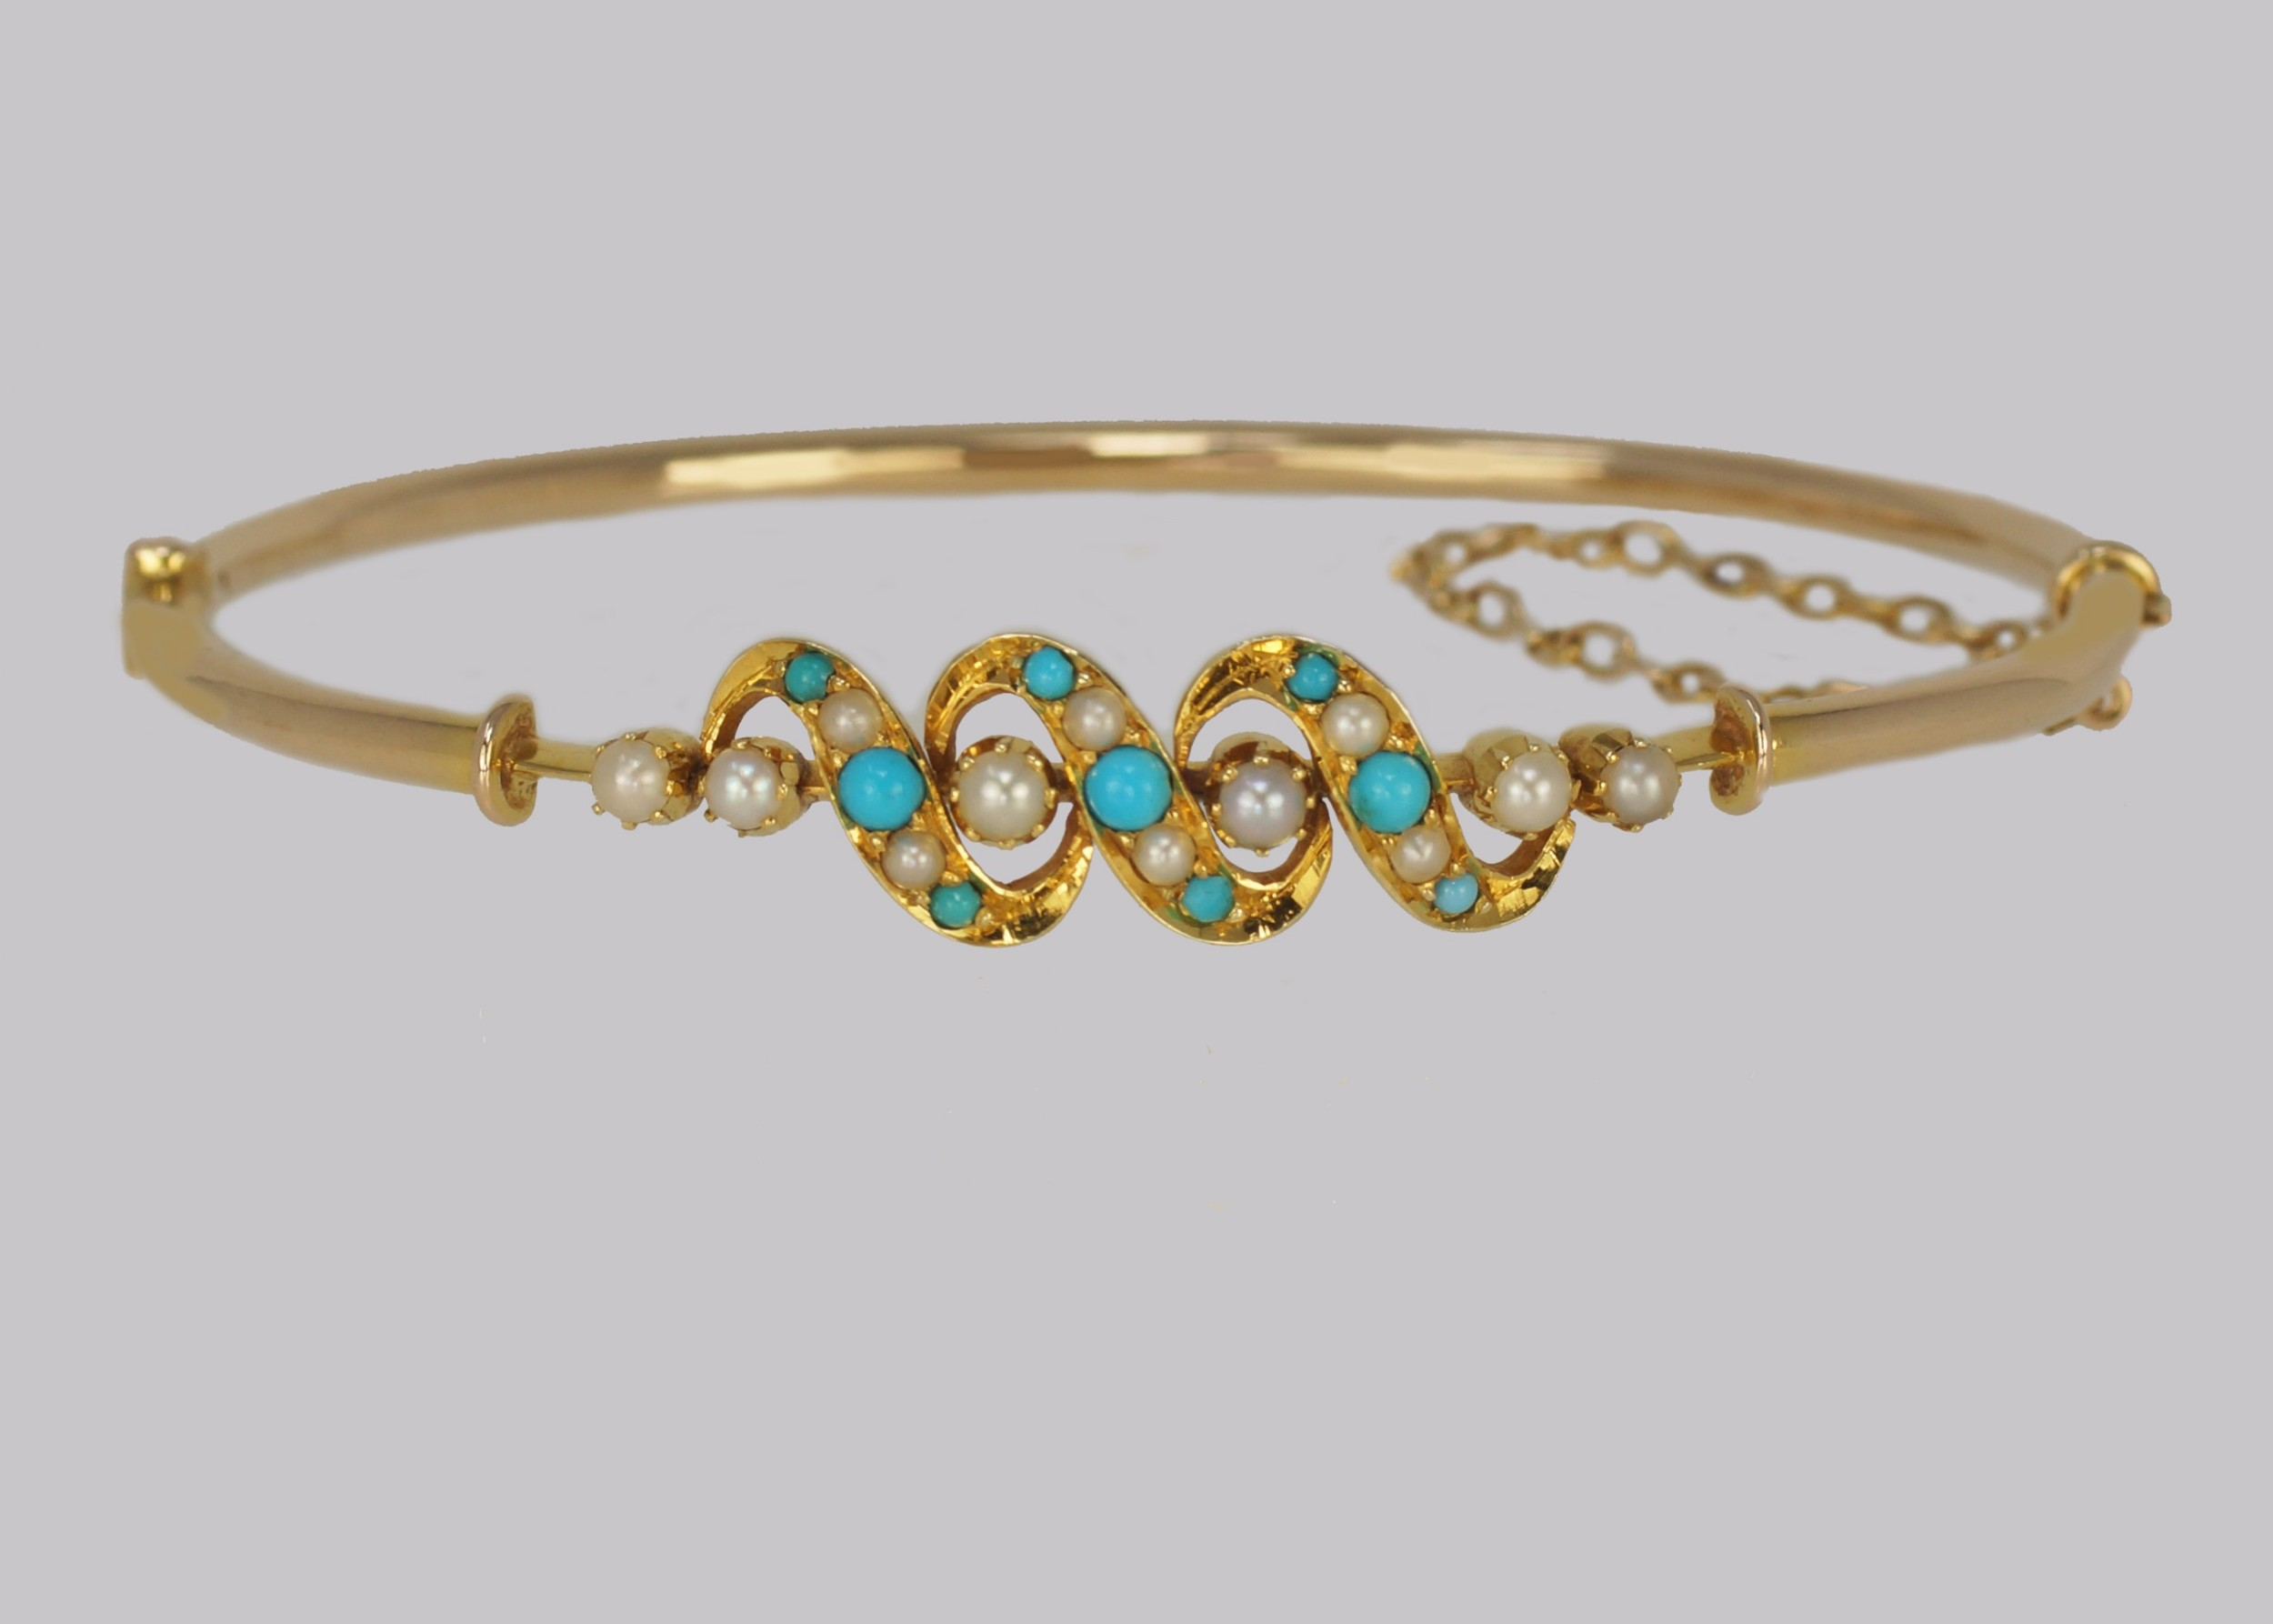 victorian turquoise pearl bangle antique 15ct gold bracelet with original box circa 1900